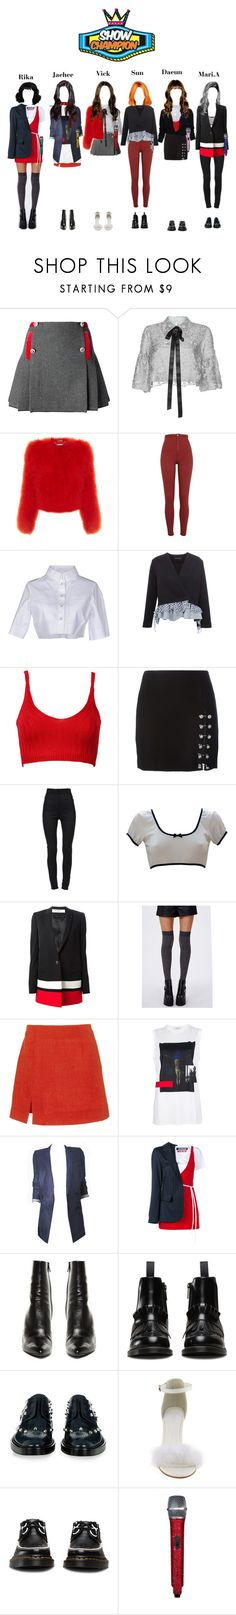 """""""Show Champion StarZ- Lucky Baby"""" by starz-official ❤ liked on Polyvore featuring FAY, Costarellos, Alexander McQueen, River Island, Alexander Wang, Anouki, WithChic, Versus, Dolce&Gabbana and Givenchy"""